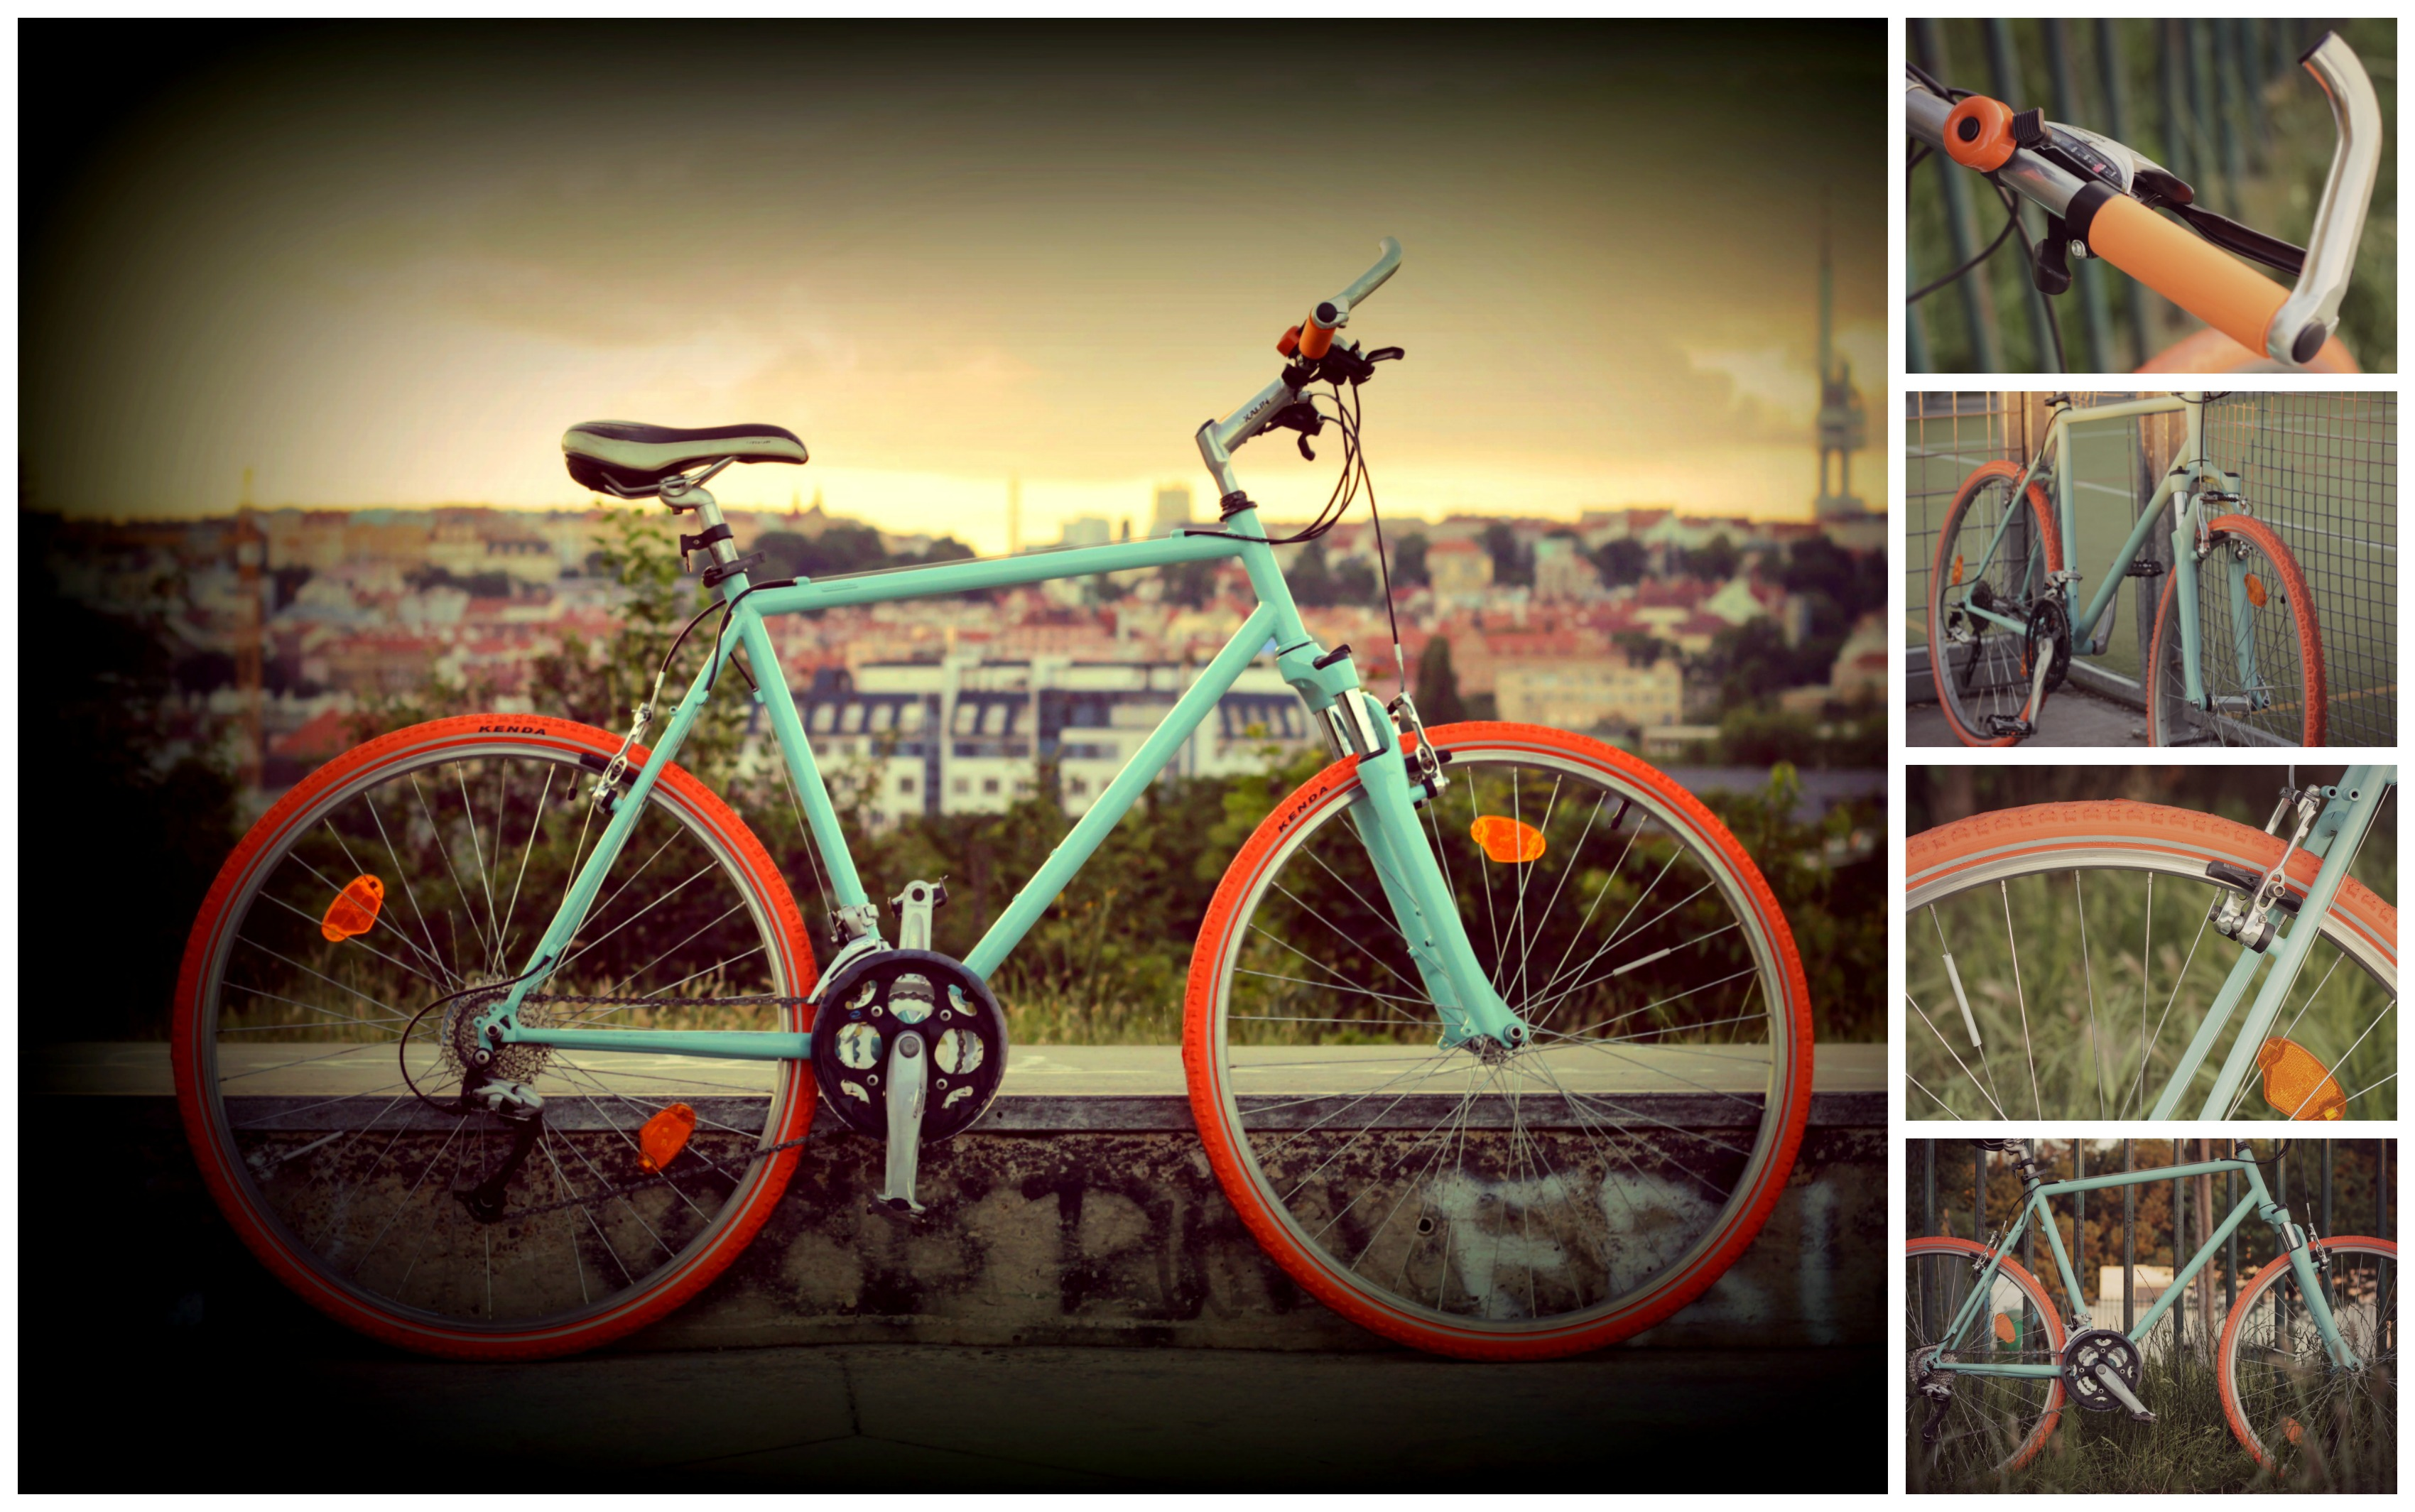 Old bike retro renovation - mint and orange colours